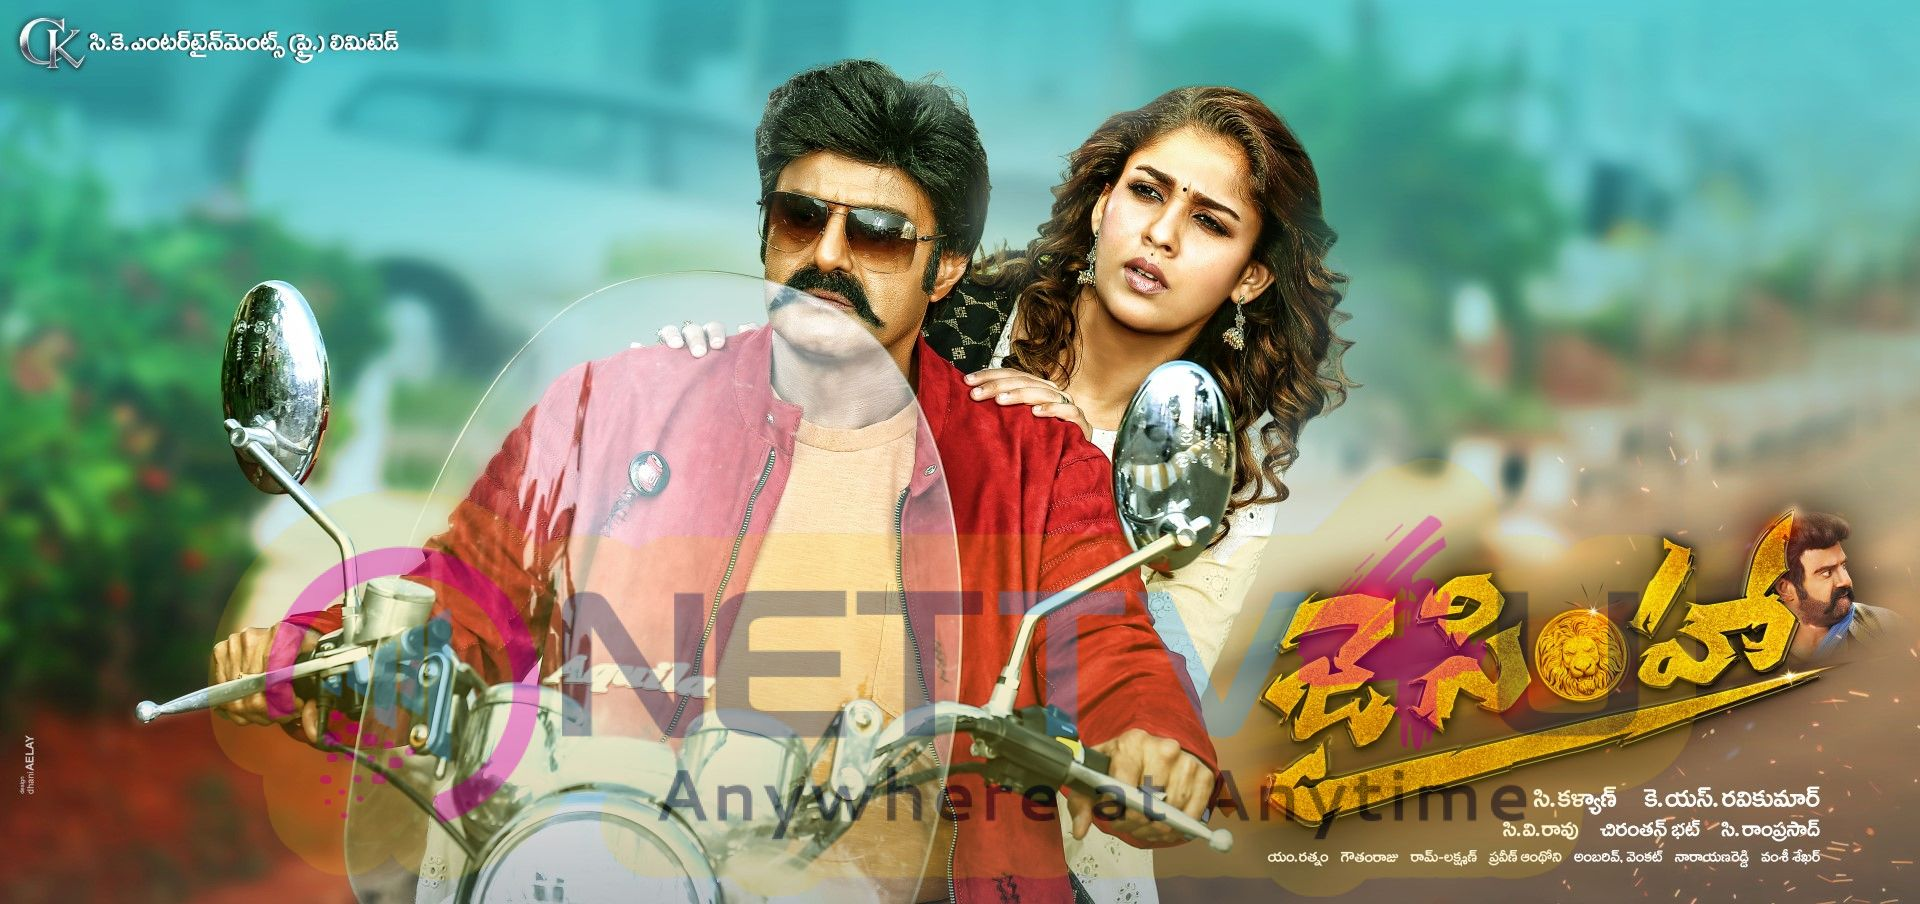 Jai Simha Fresh Schedule From November 22nd To December 1st Poster